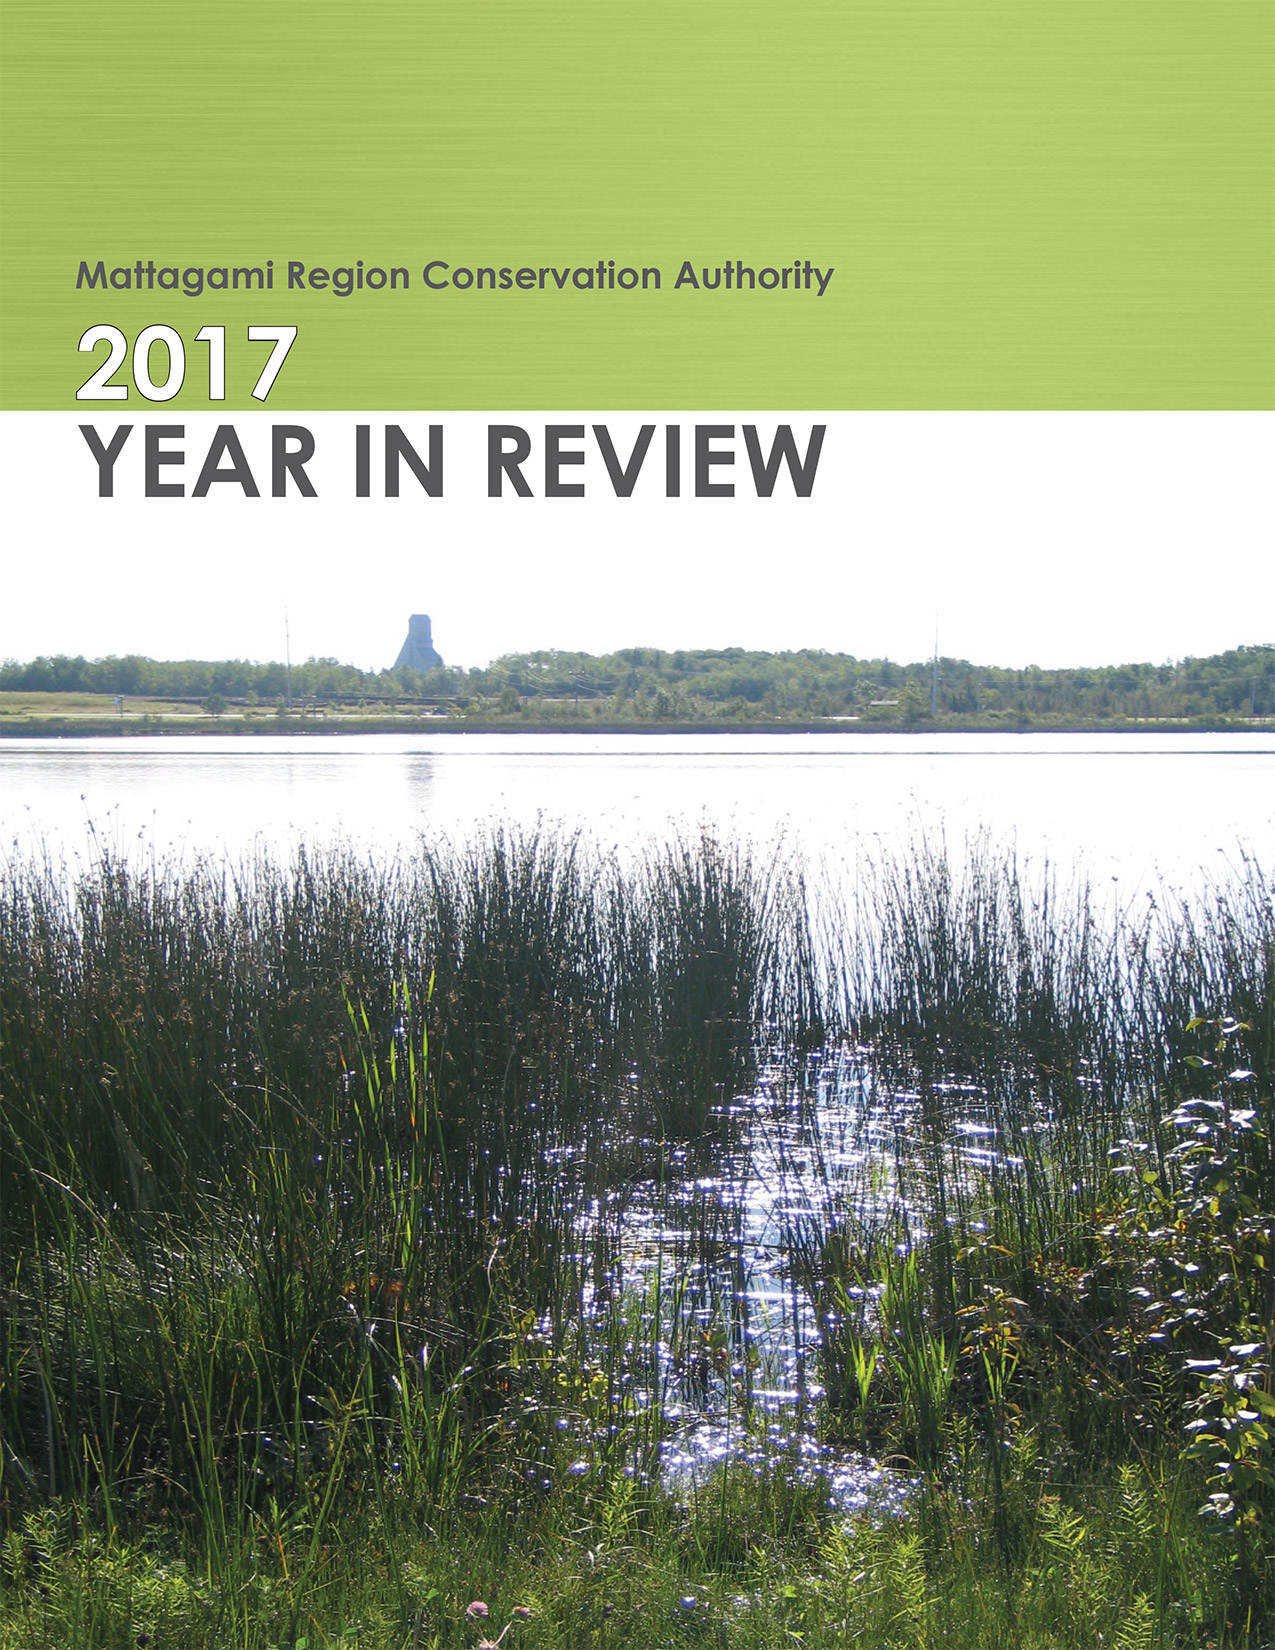 Cover of the Mattagami Region Conservation Authority 2017 year in Review